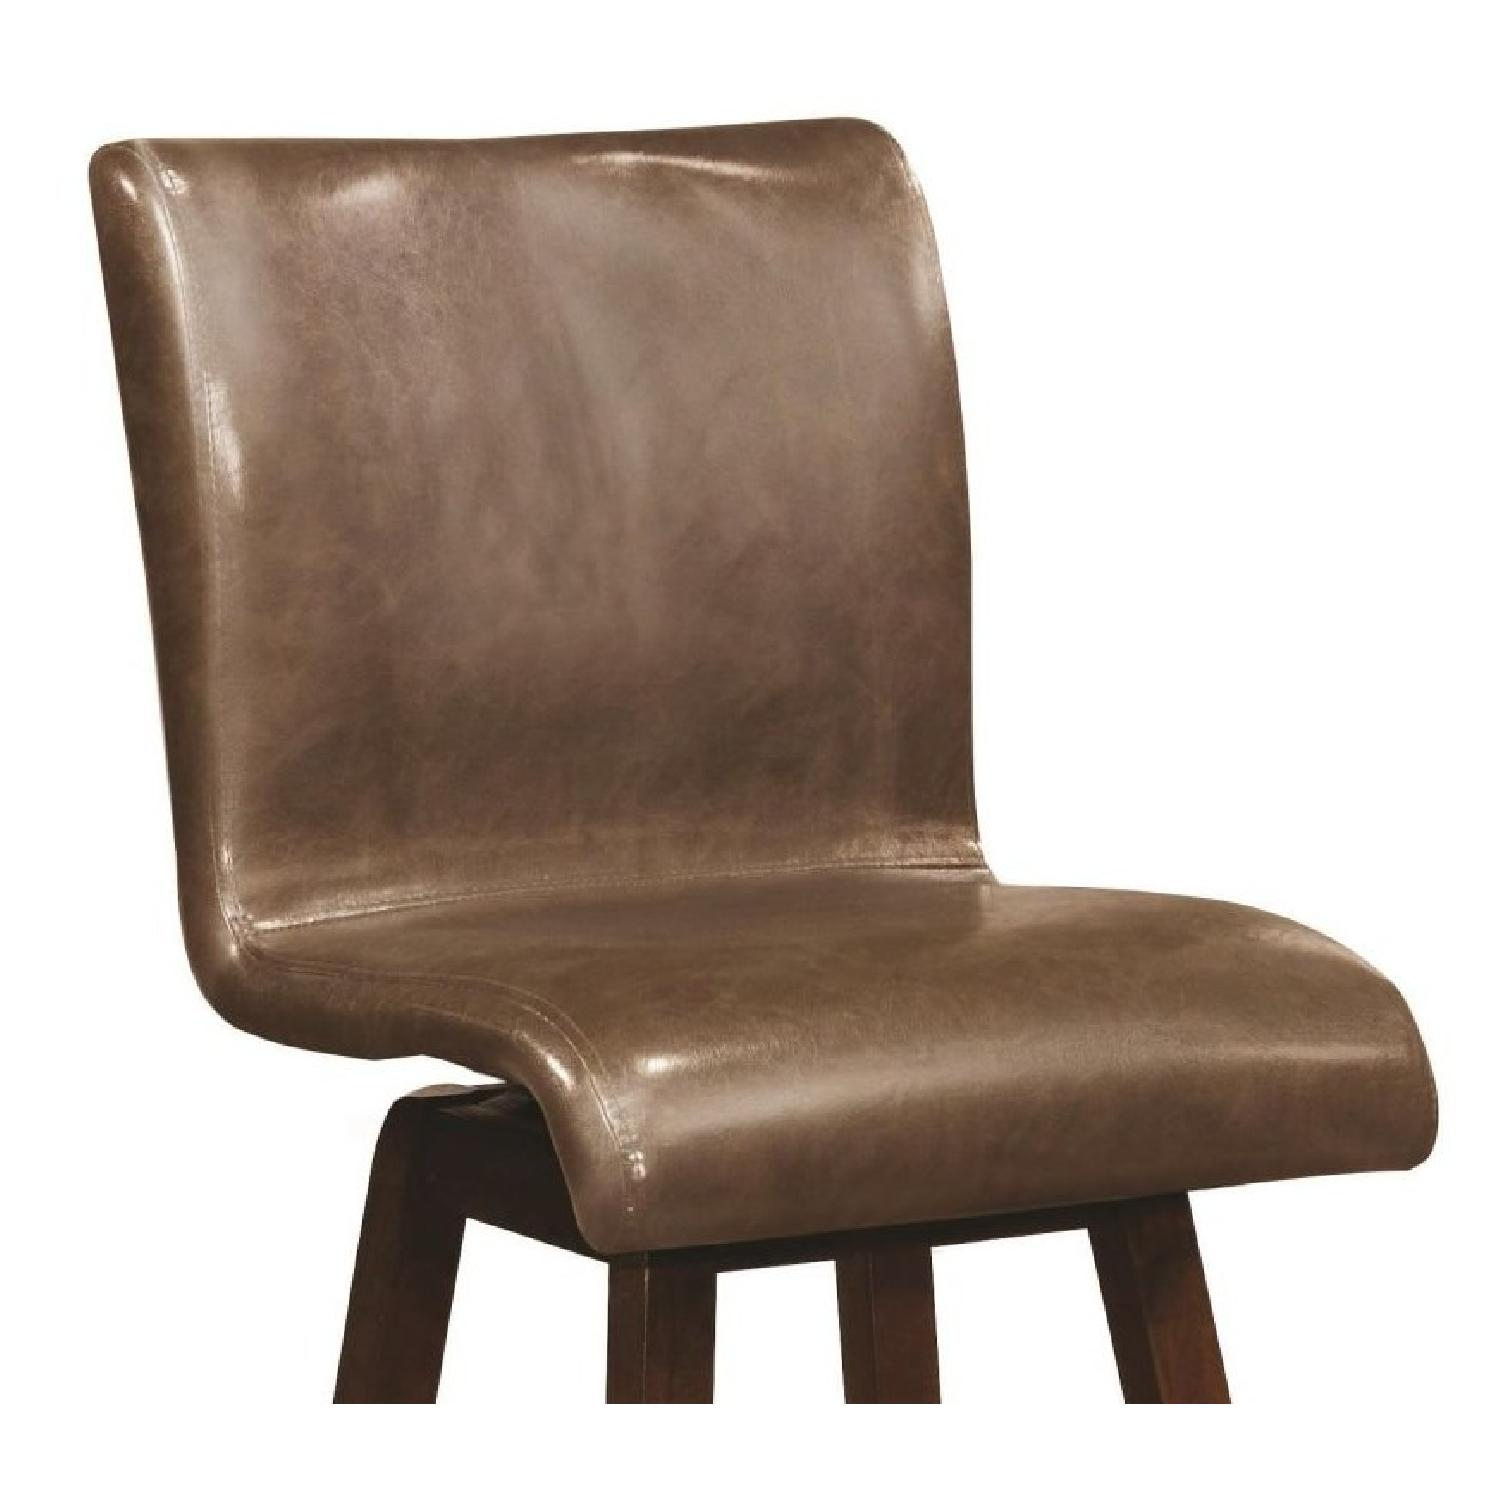 Modern Upholstered Barstool w/ Brown Cushions - image-1